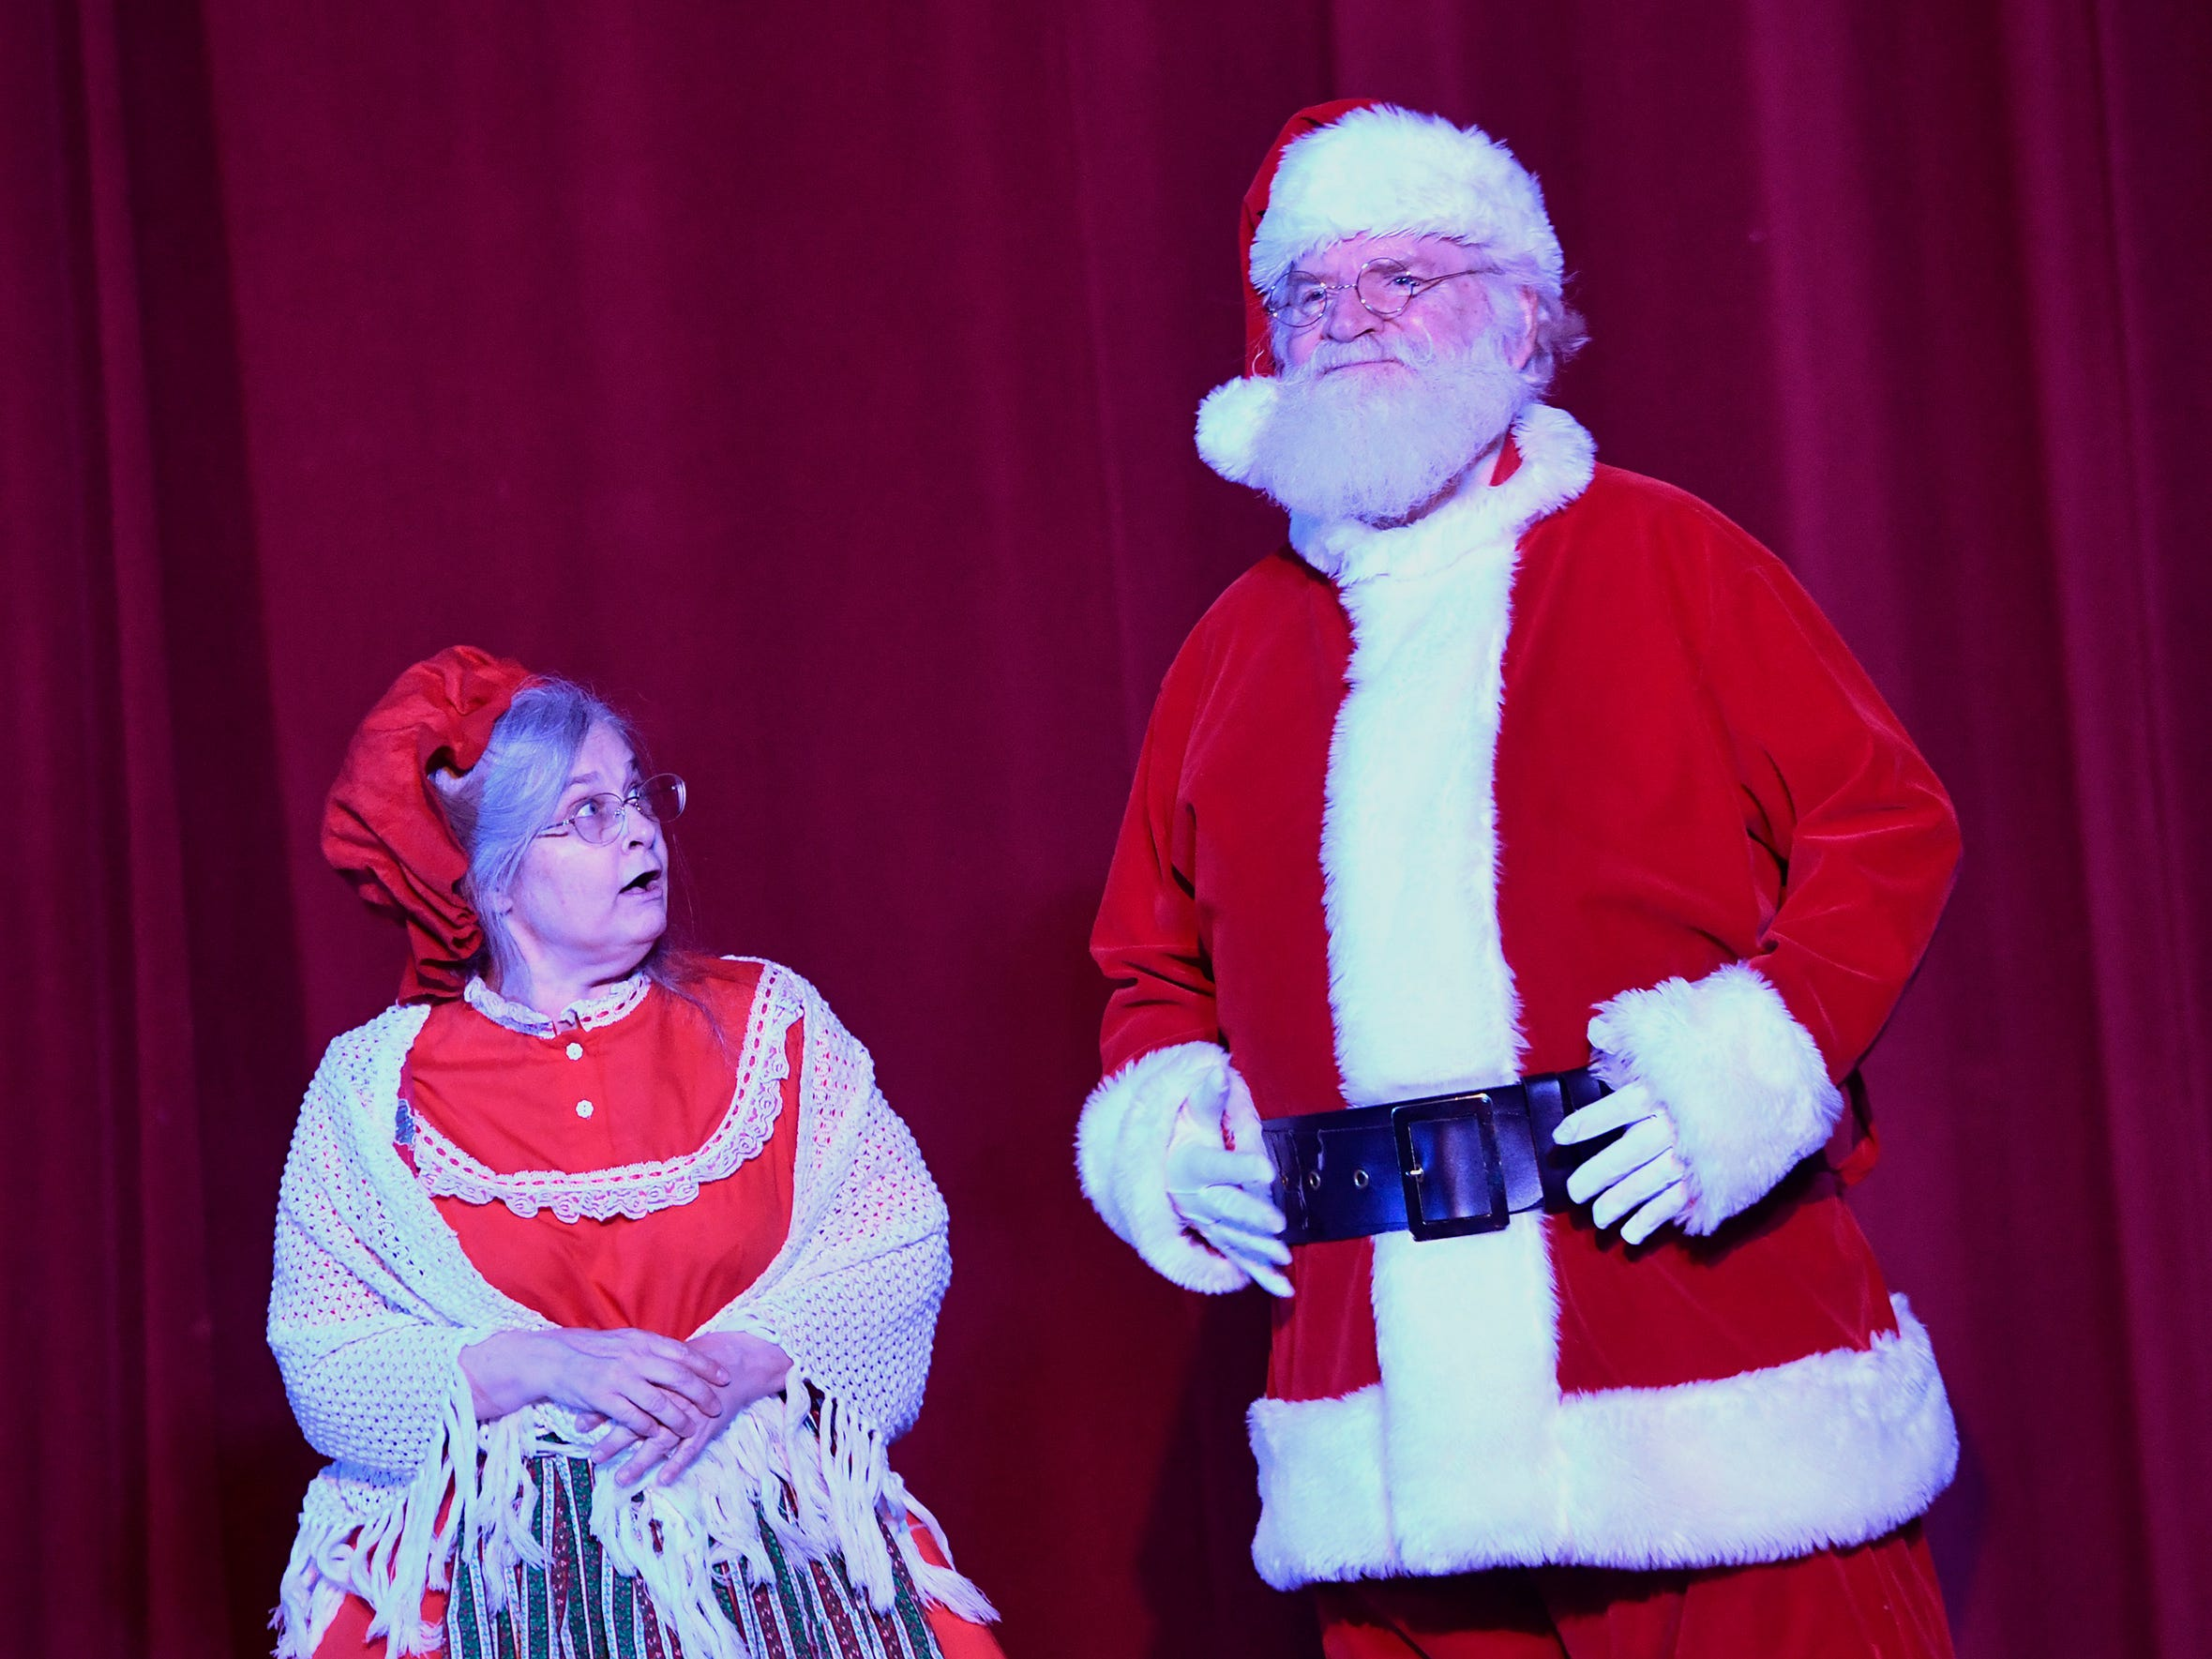 """Mrs. Claus, left, played by Sarah Kilgalen, and Santa, played by Steve Brown, prepare for Santa's Christmas Eve adventure during a dress rehearsal for the Theater Arts for Everyone performance of """"The Night Before Christmas."""" Show times are Dec. 7 and 8 at 7 p.m. and Dec 8 and 9 at 3 p.m.  at the York Learning Center. Tickets are available at the door or through Eventbrite. Thursday, December 6, 2018.  John A. Pavoncello photo"""